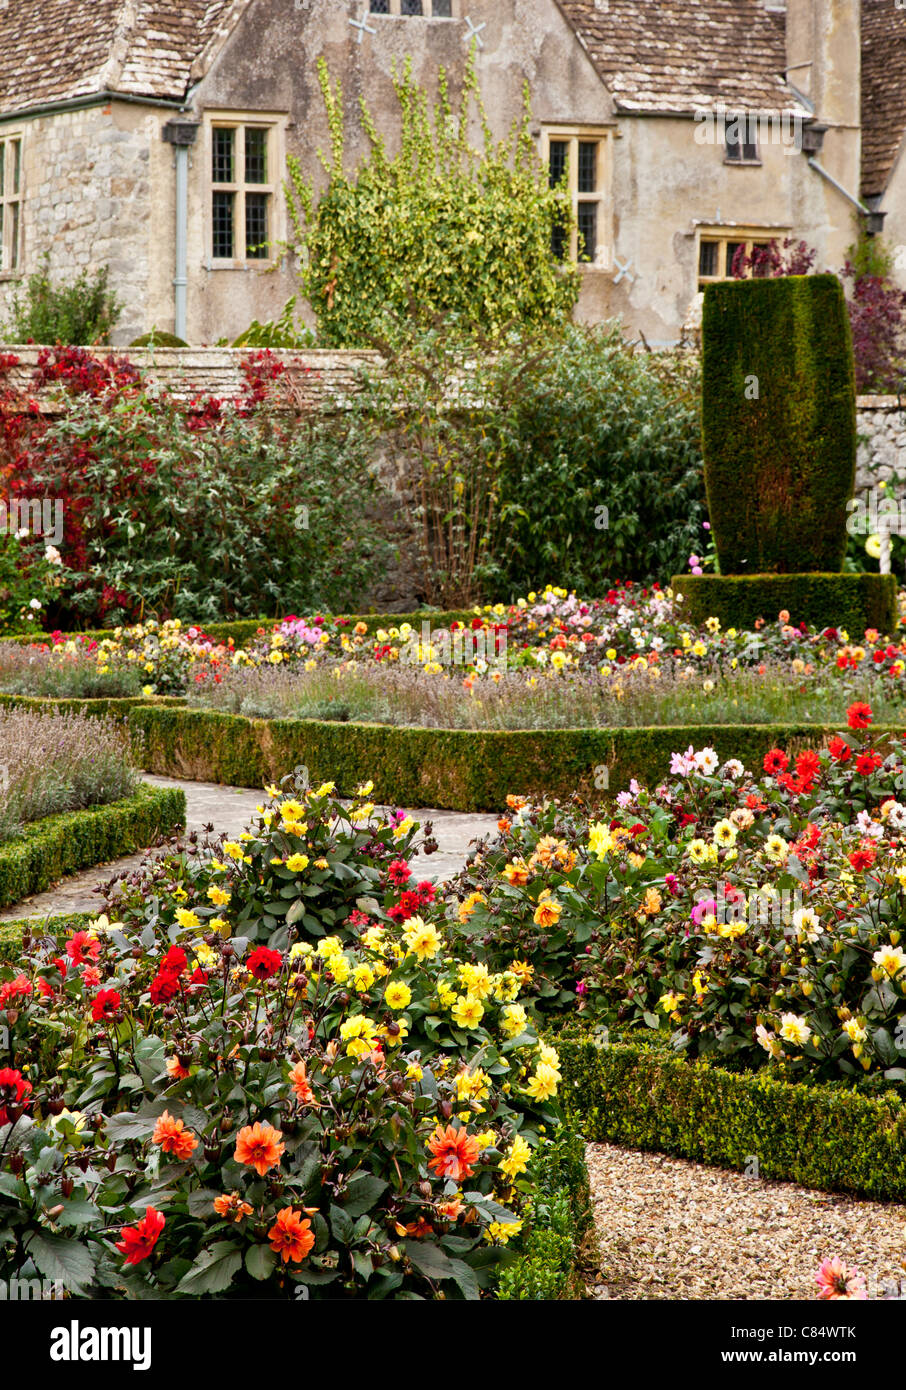 Formal garden of dahlias and low box hedges in front of a typical English country manor. - Stock Image